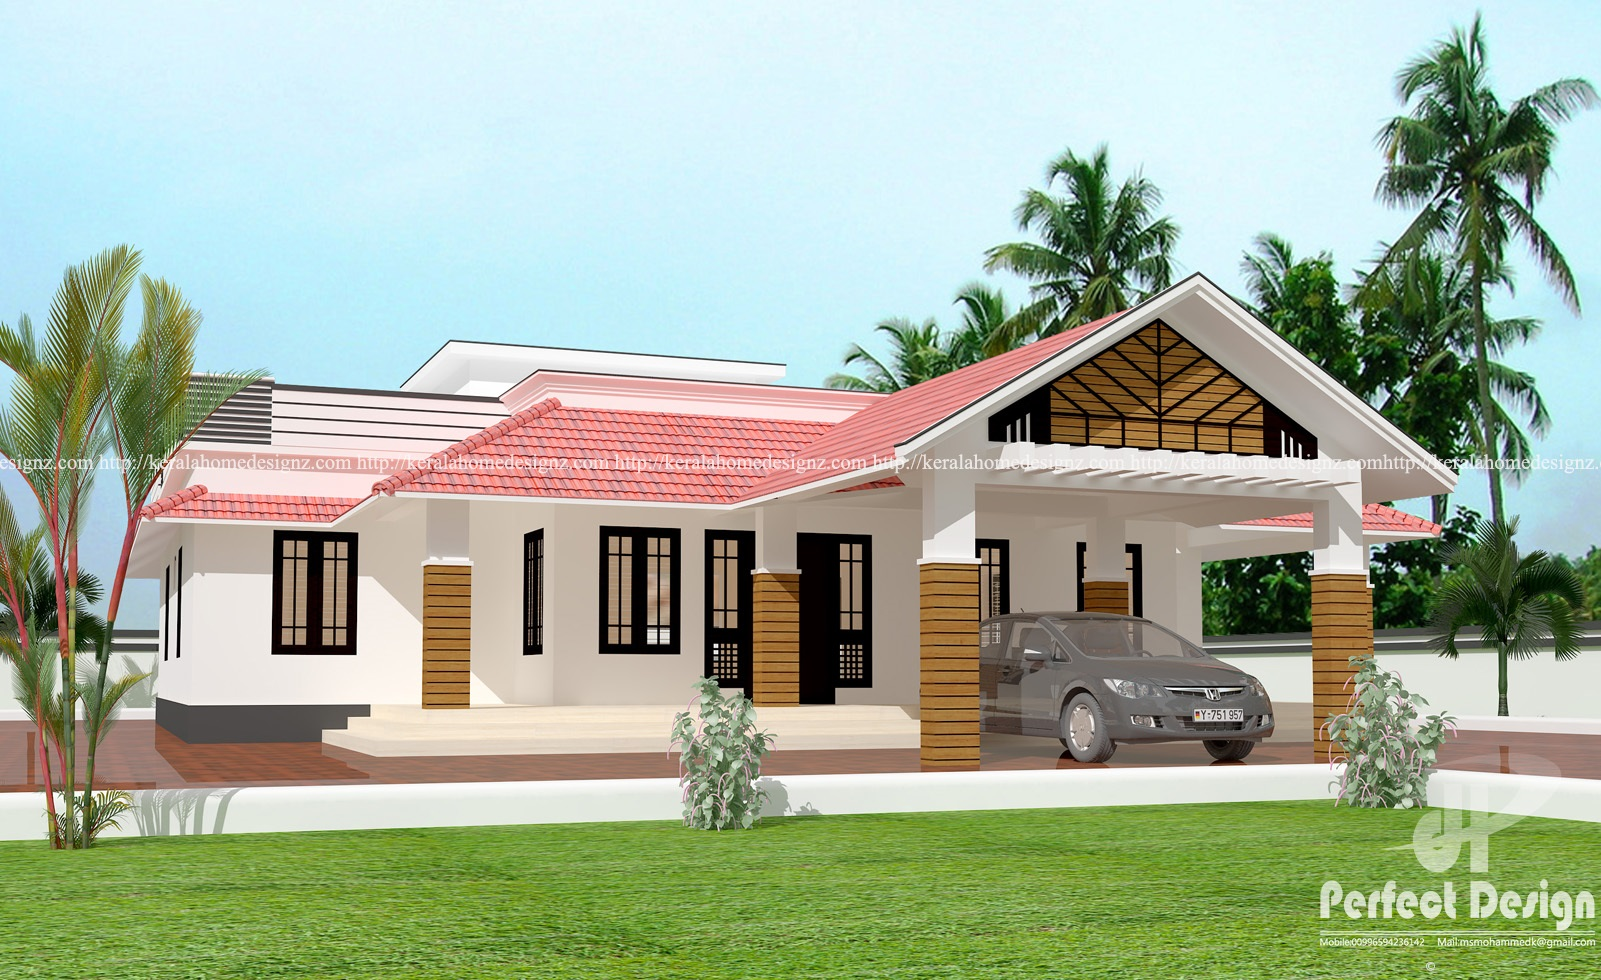 Amazing and cute home designs kerala home design for Home design find